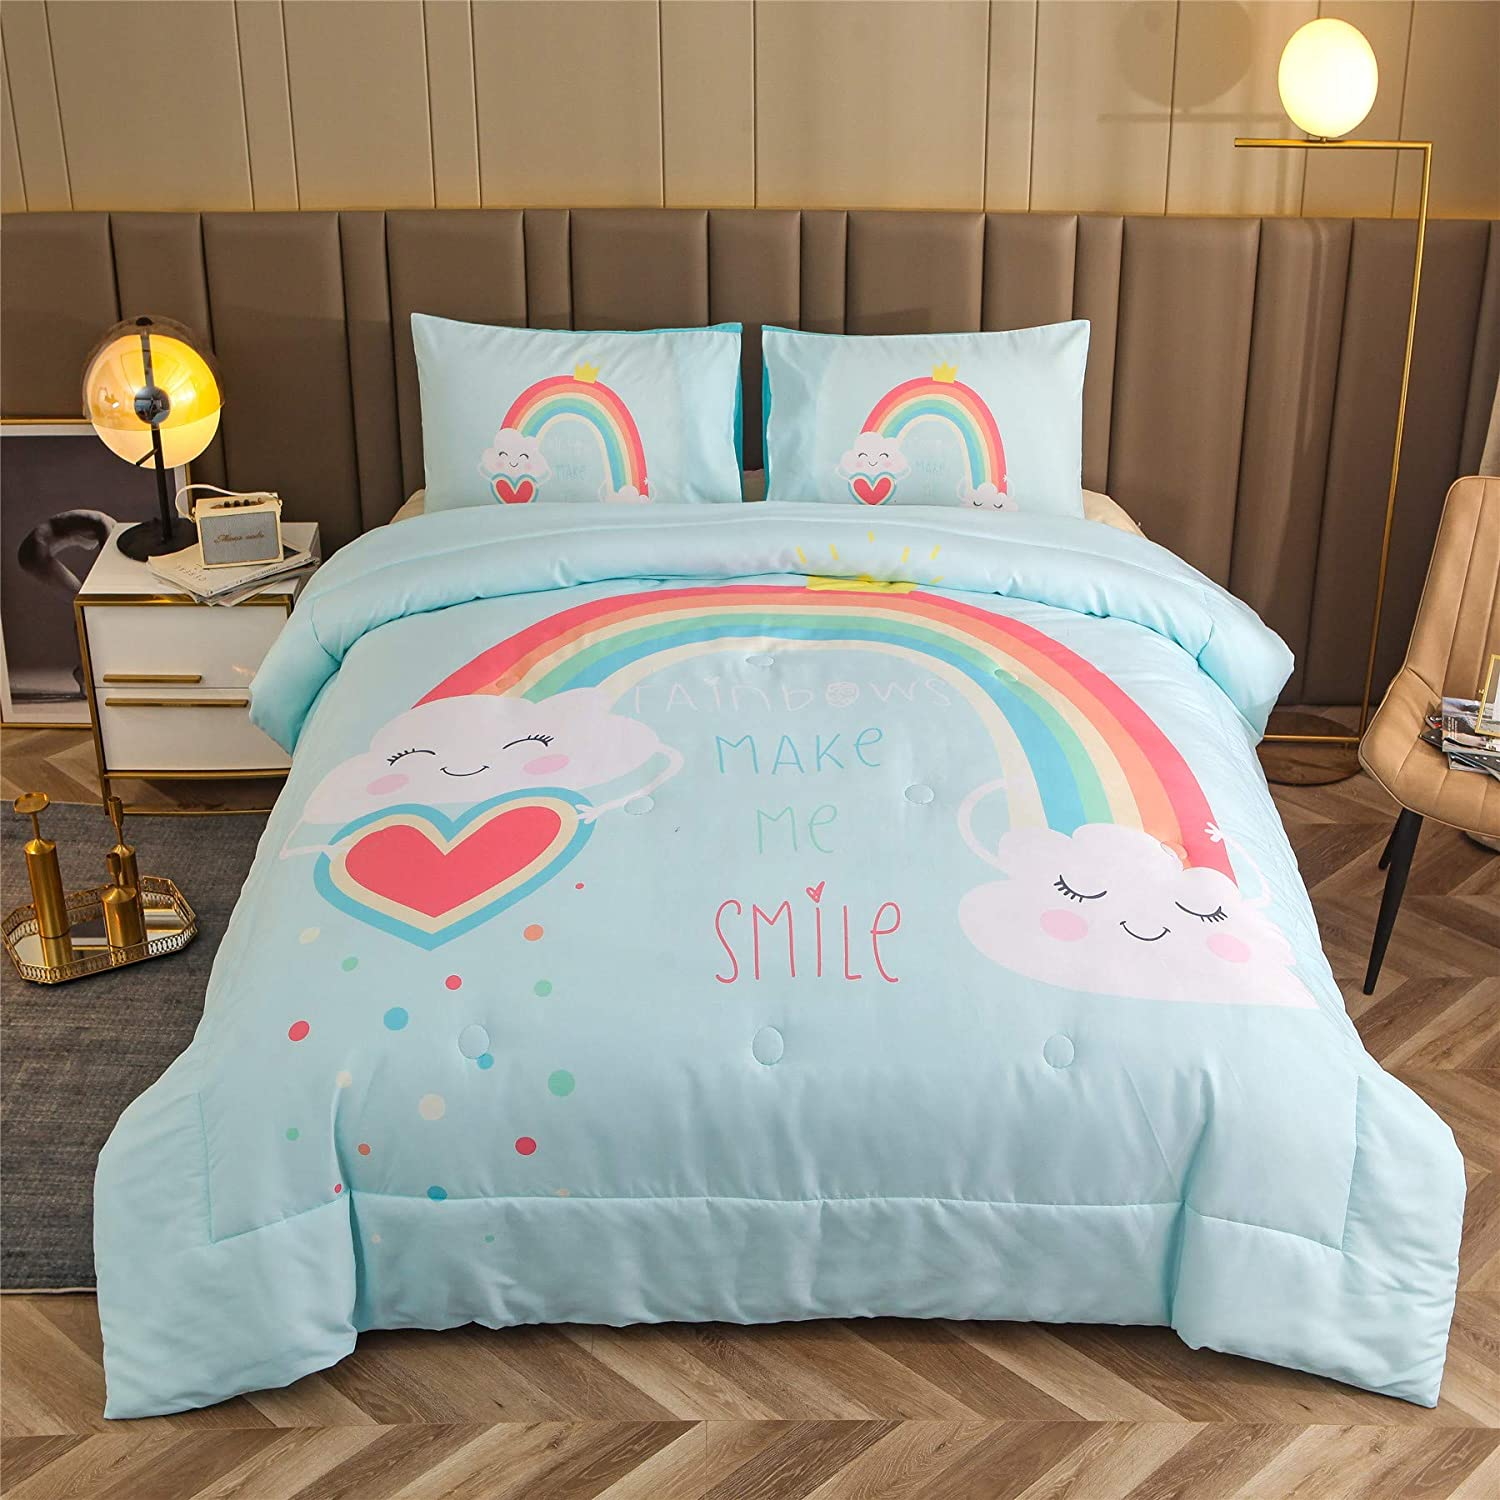 A Nice Night Ultra OFFicial store Soft Chirstmas Comforter Fixed price for sale Bl Cartoon Set Kid's